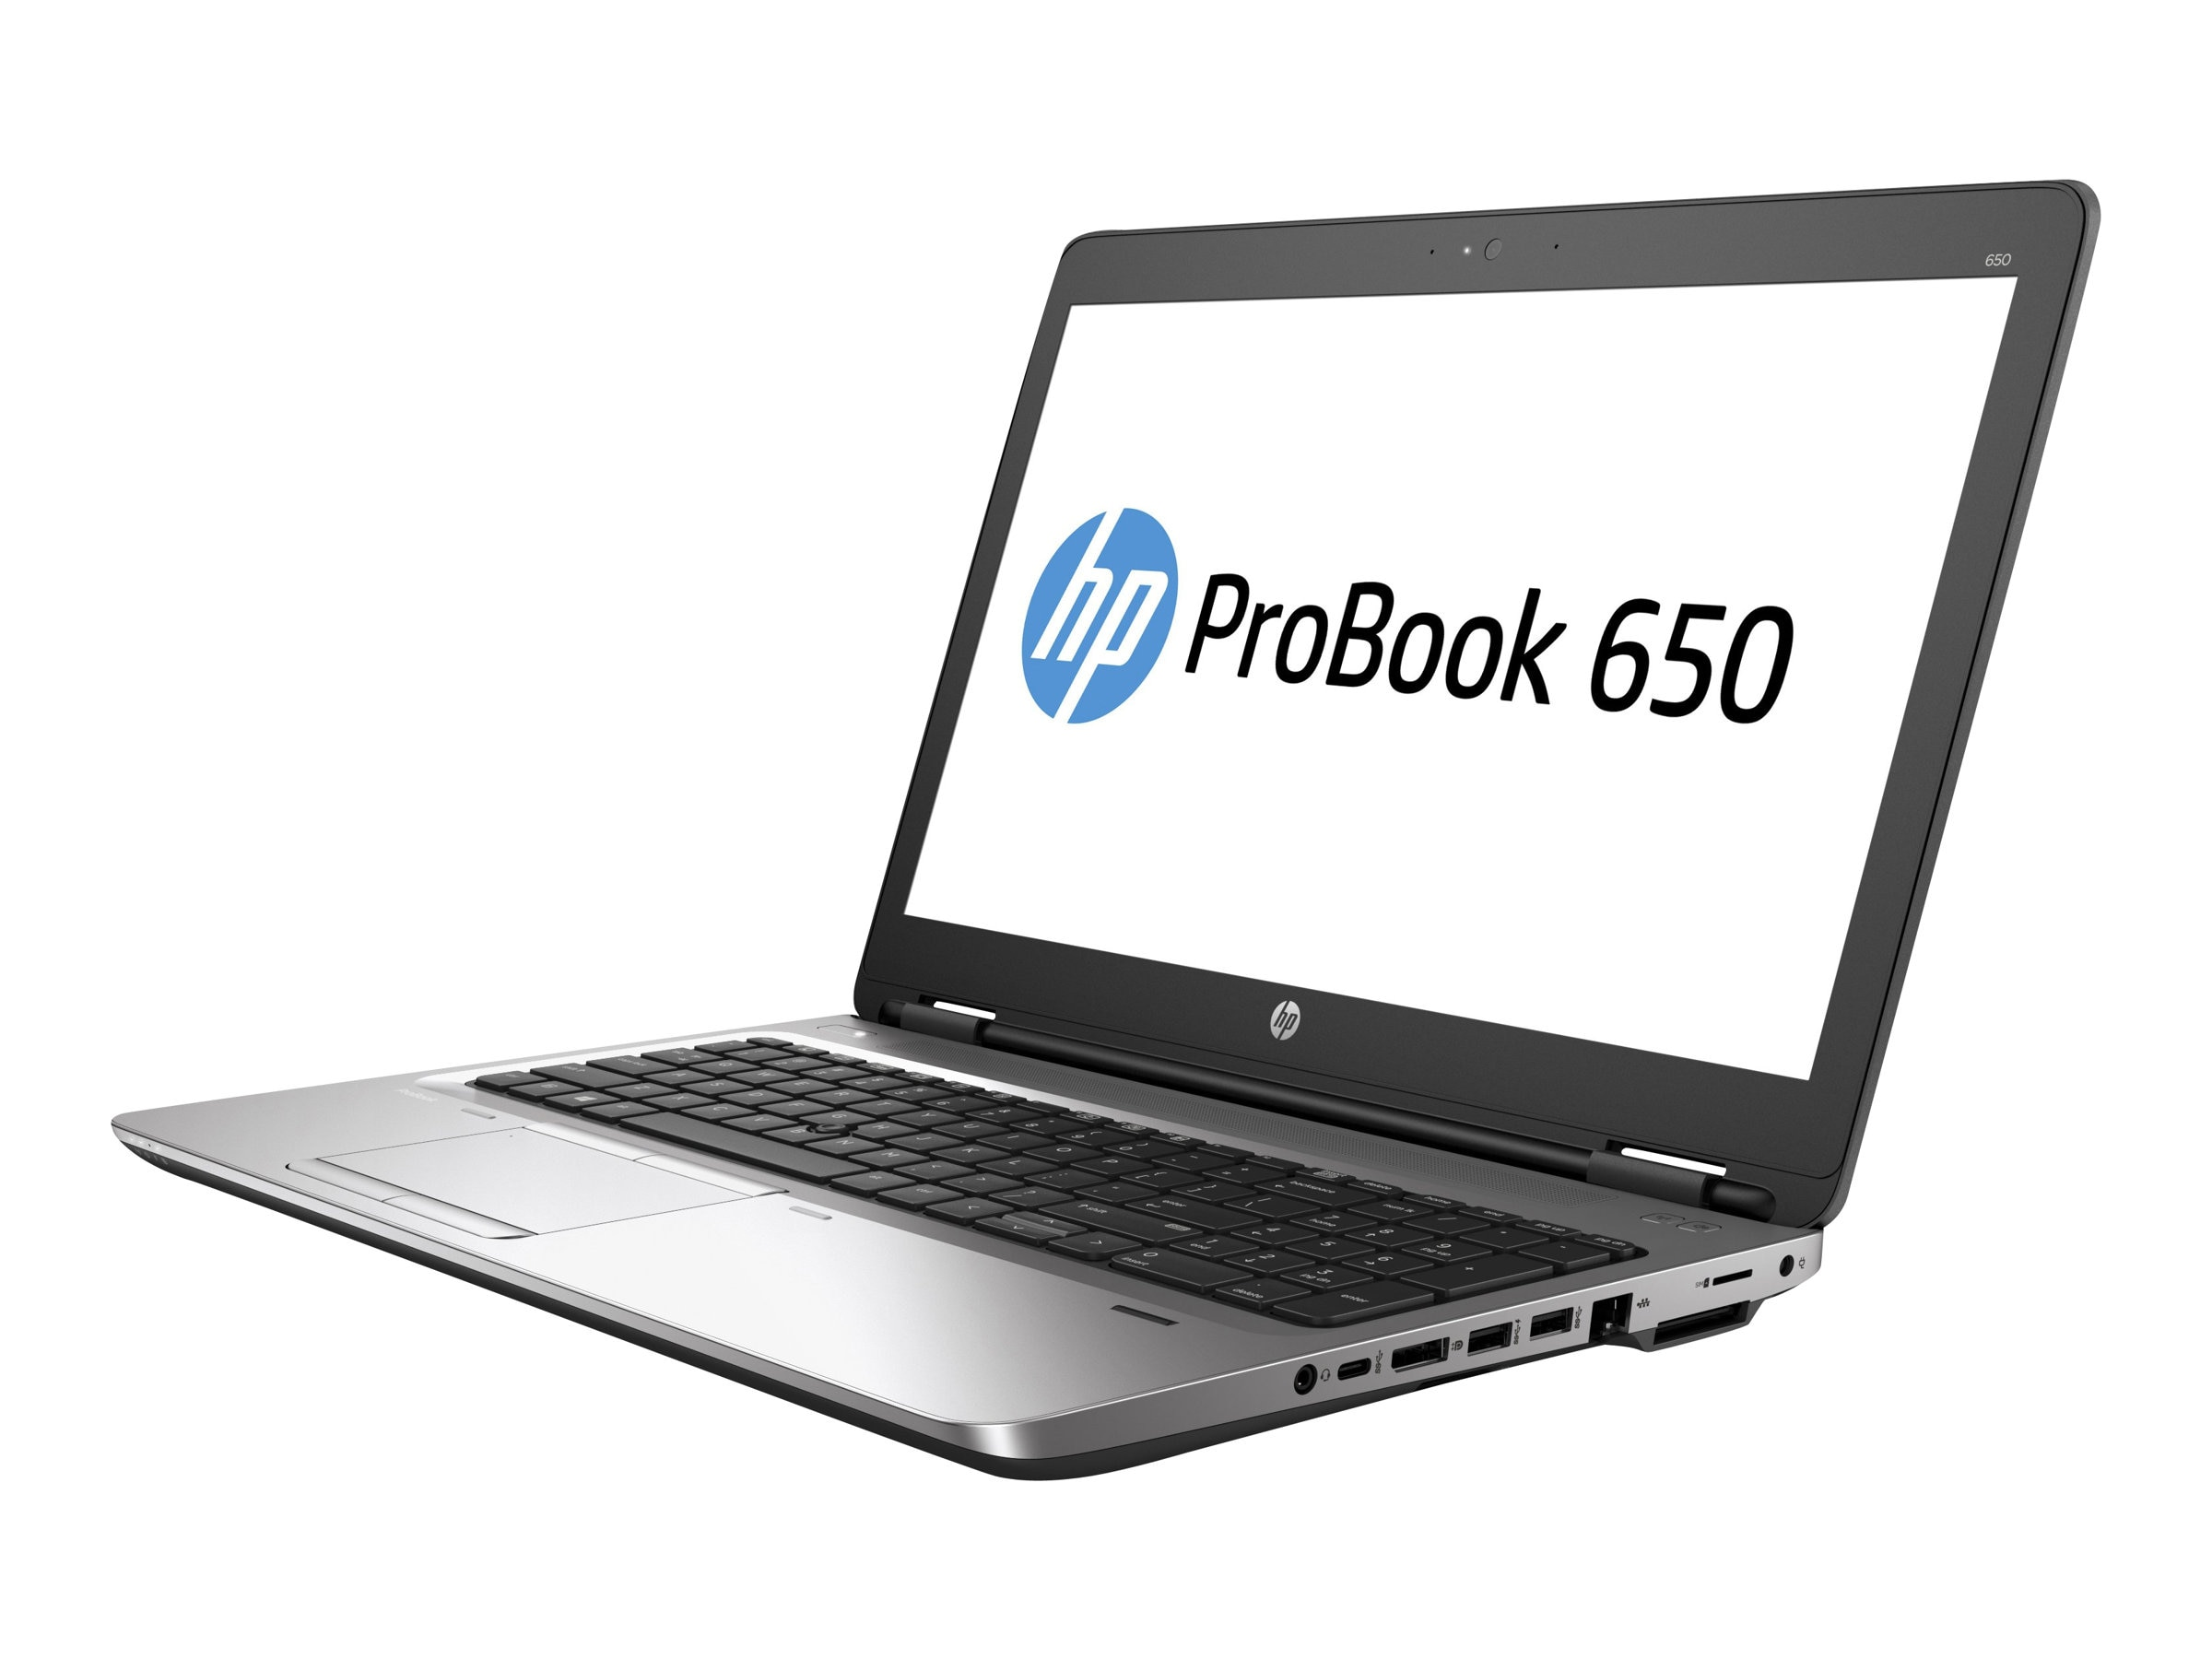 HP ProBook 650 G2 2.3GHz Core i5 15.6in display